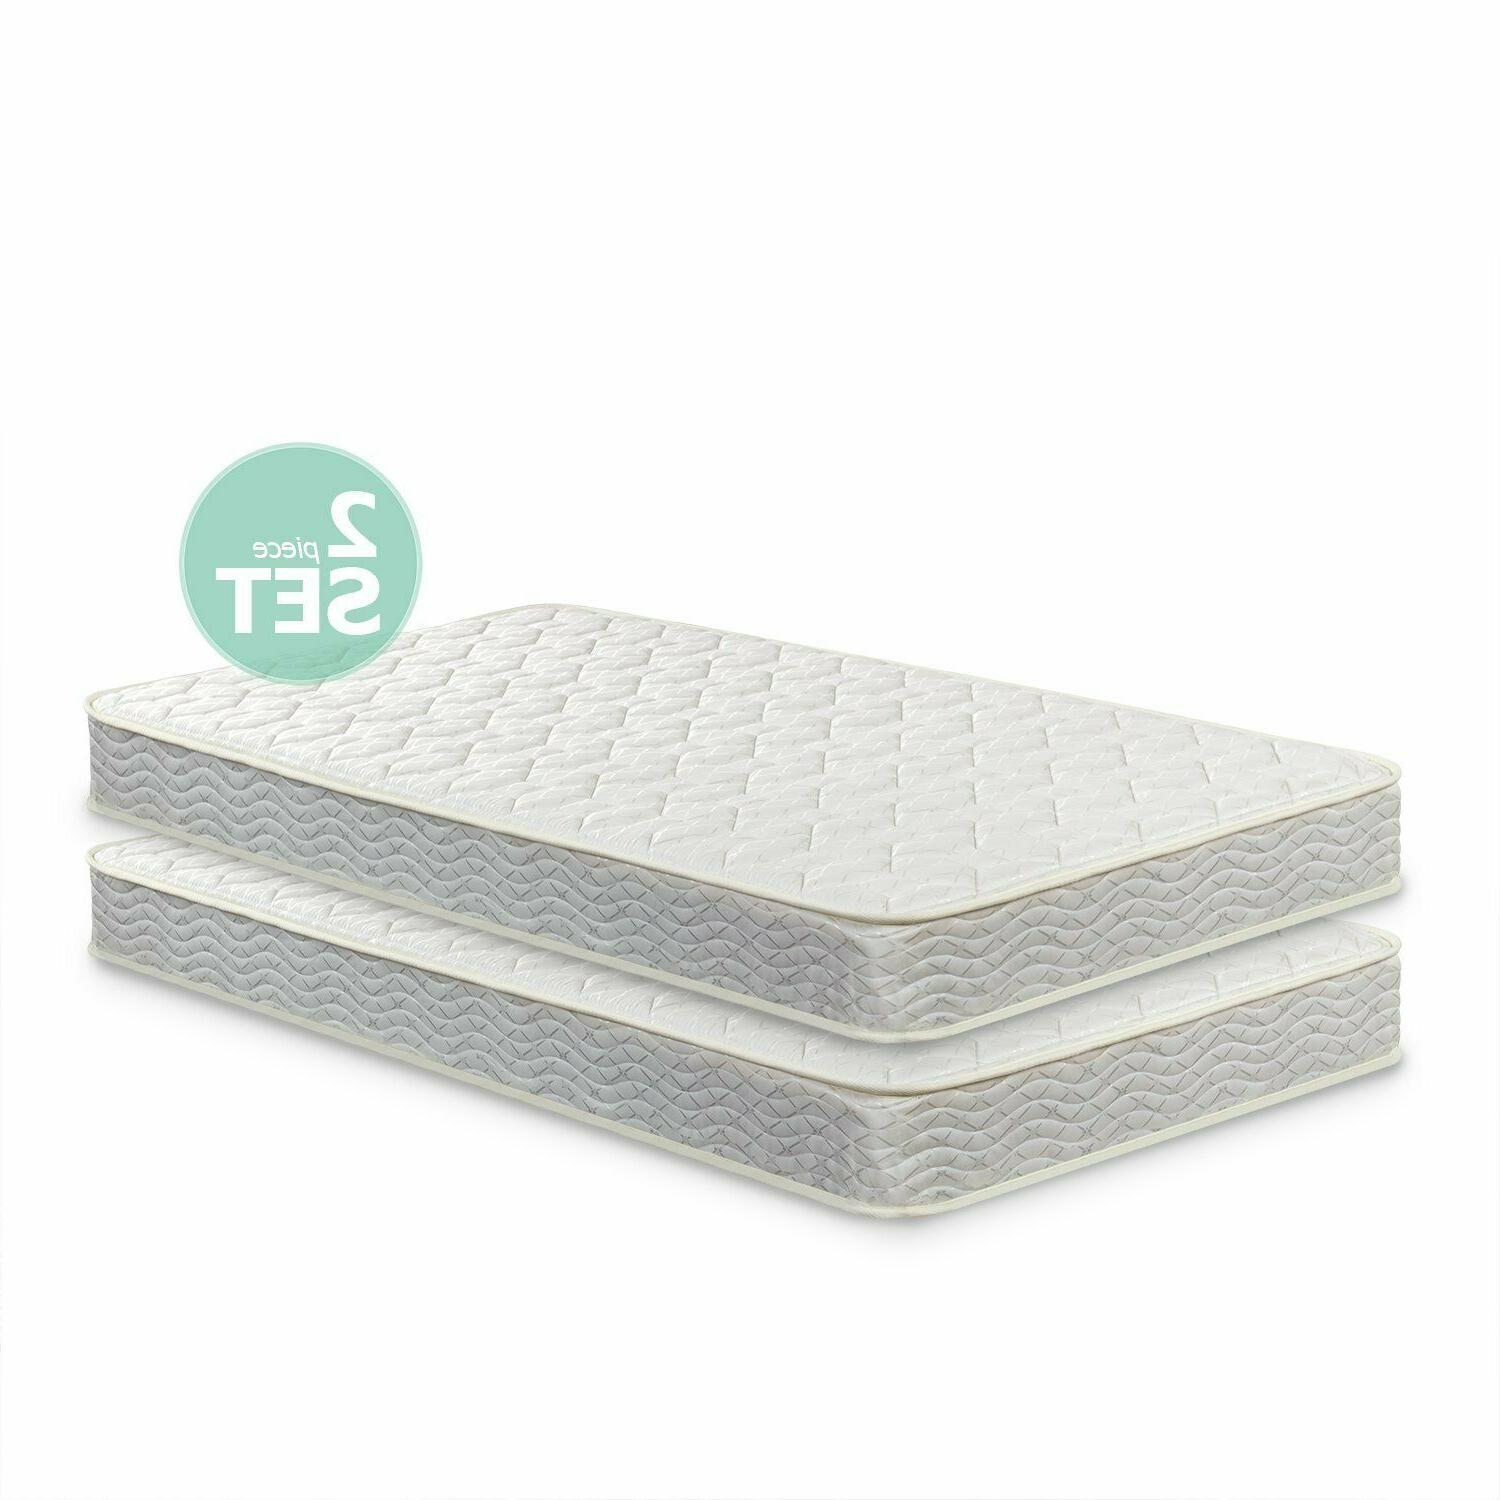 6 inch spring twin mattress 2 pack